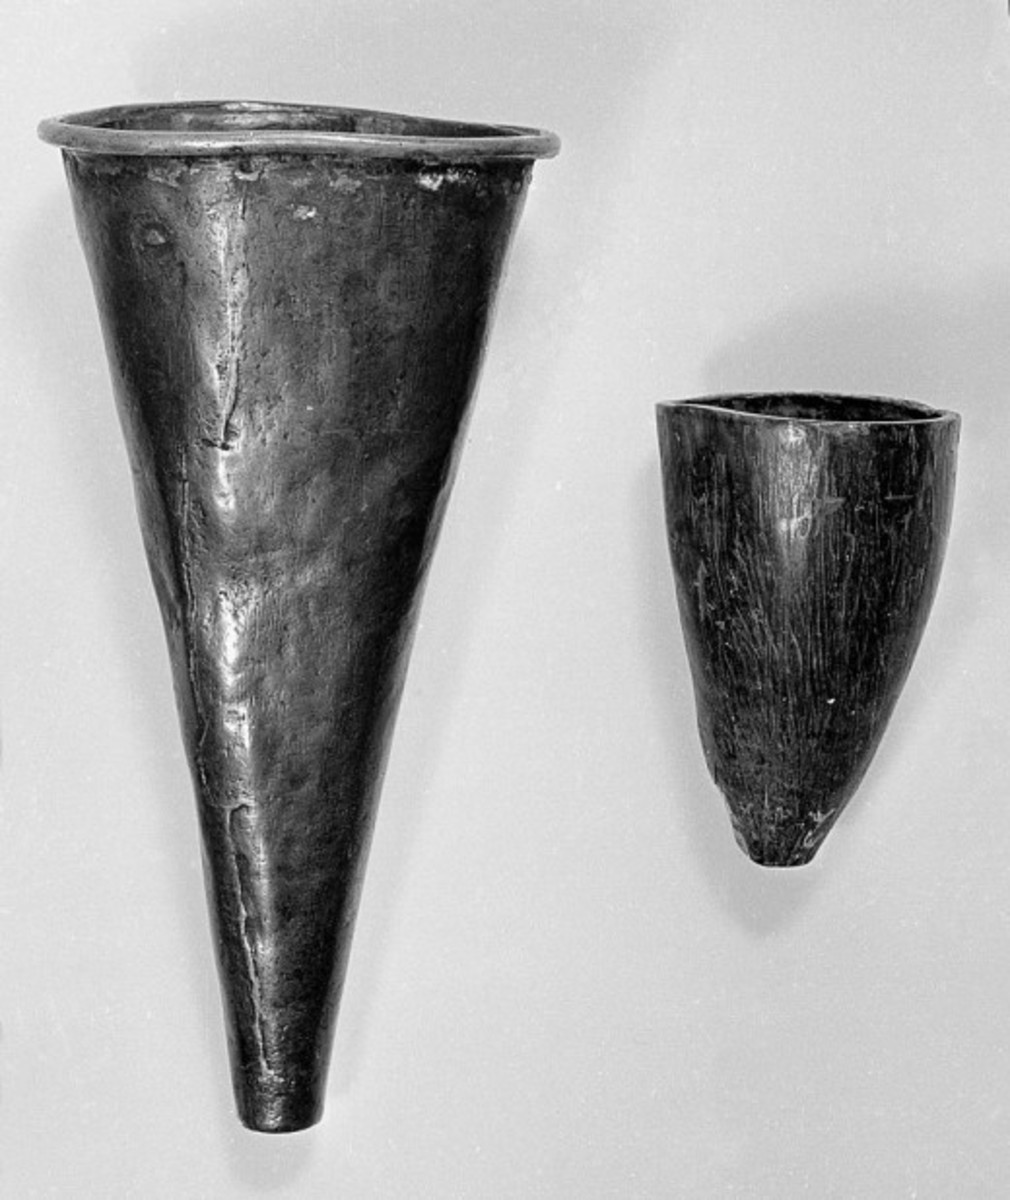 Indian cupping tools. The left made out of copper. The right from an animal horn. -